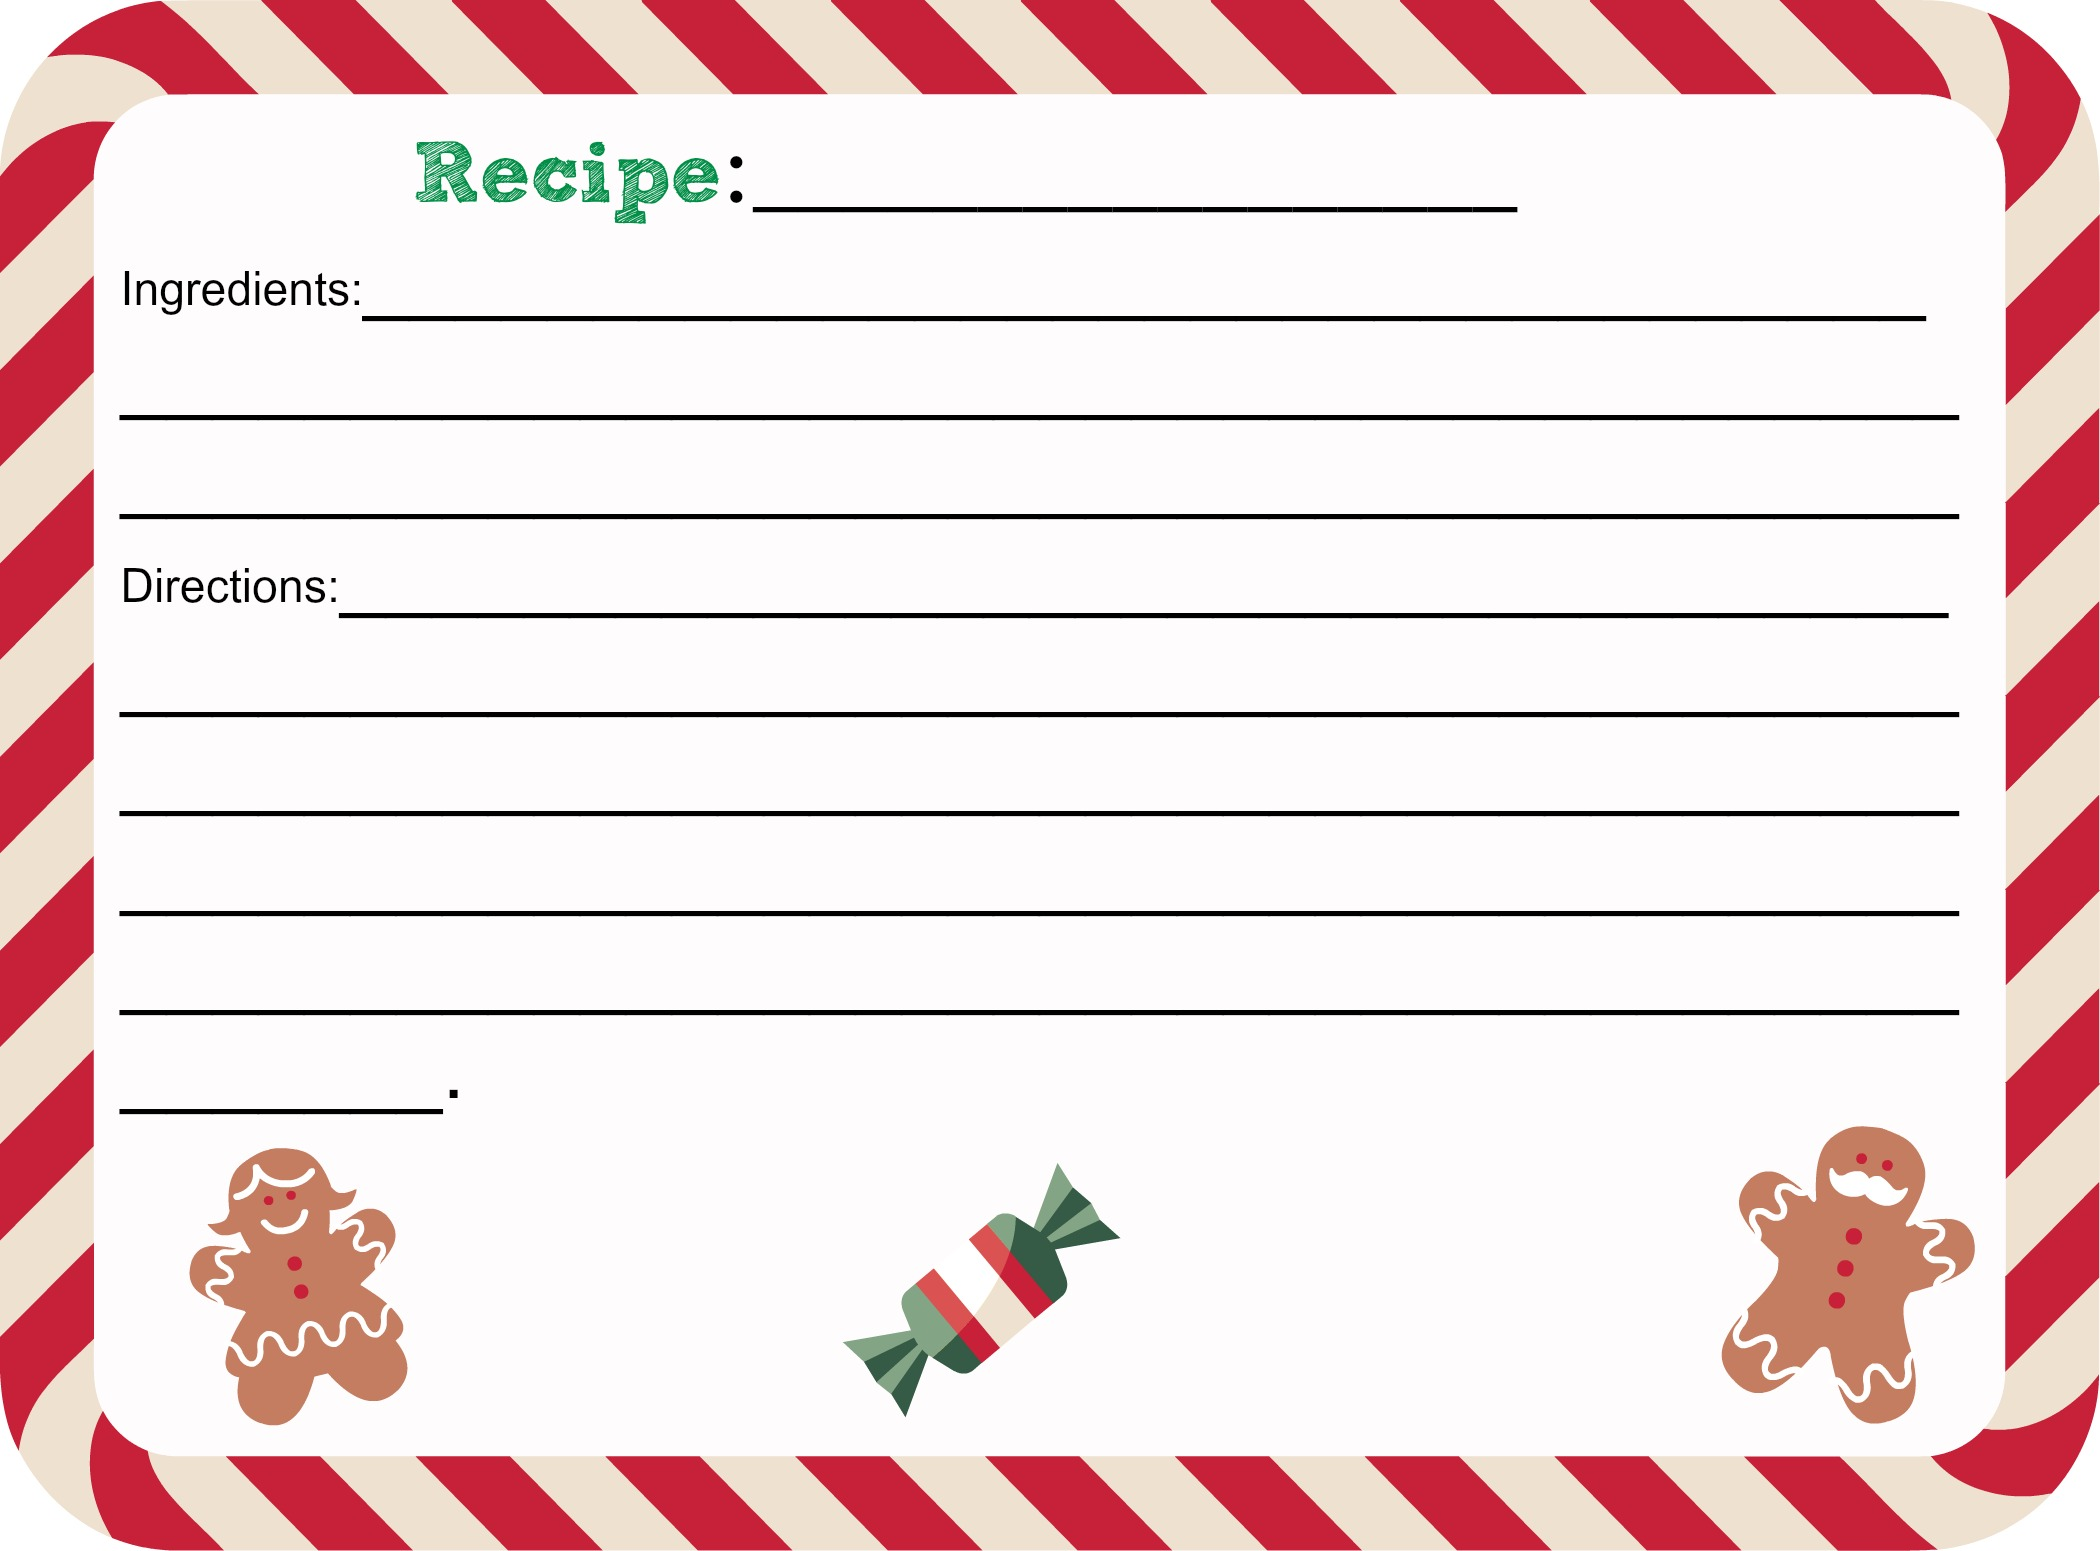 photograph regarding Printable Christmas Recipe Cards named Totally free Printable Xmas Recipe Card - SheSaved®